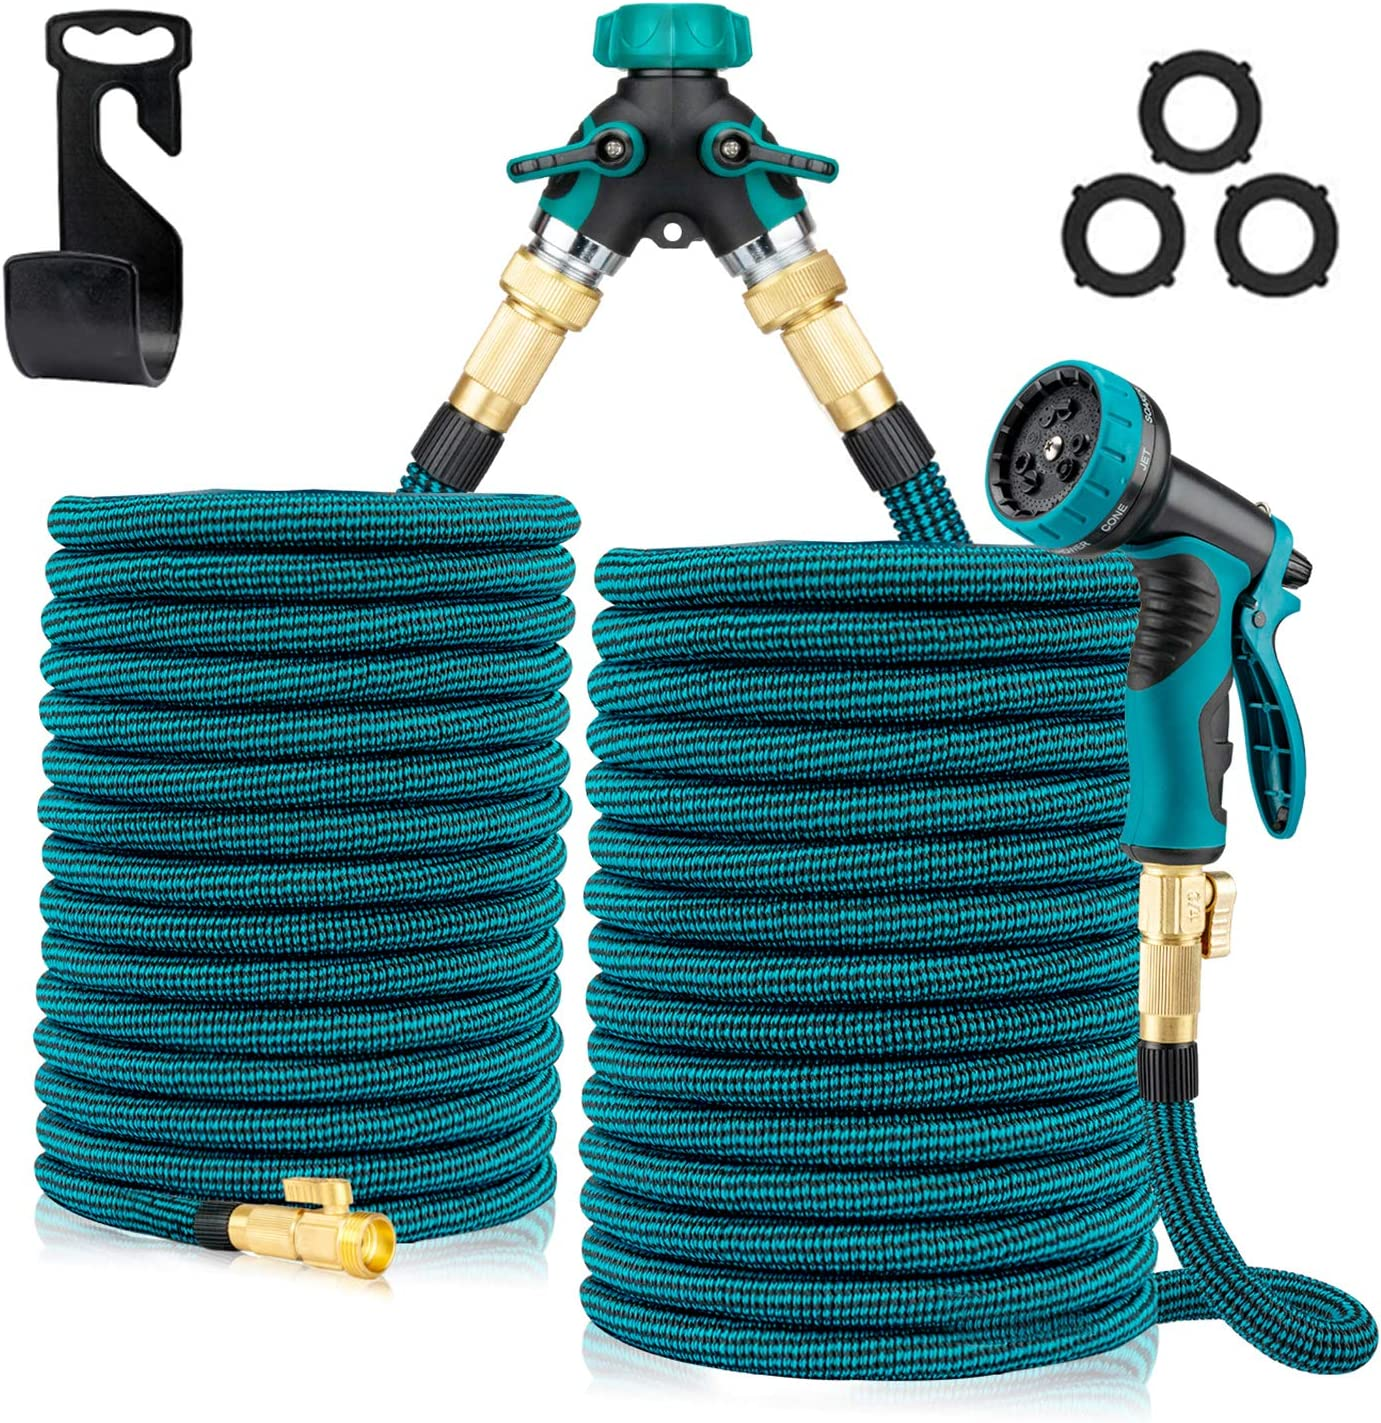 2Pcs x 50Ft Flexible Expanding Garden Hose, Strength Stretch Fabric Pipe for Watering & Car Washing, Nozzle Solid Brass Connector and High-Pressure Water Spray Nozzle, 2 Way Splitter (Blue Black)